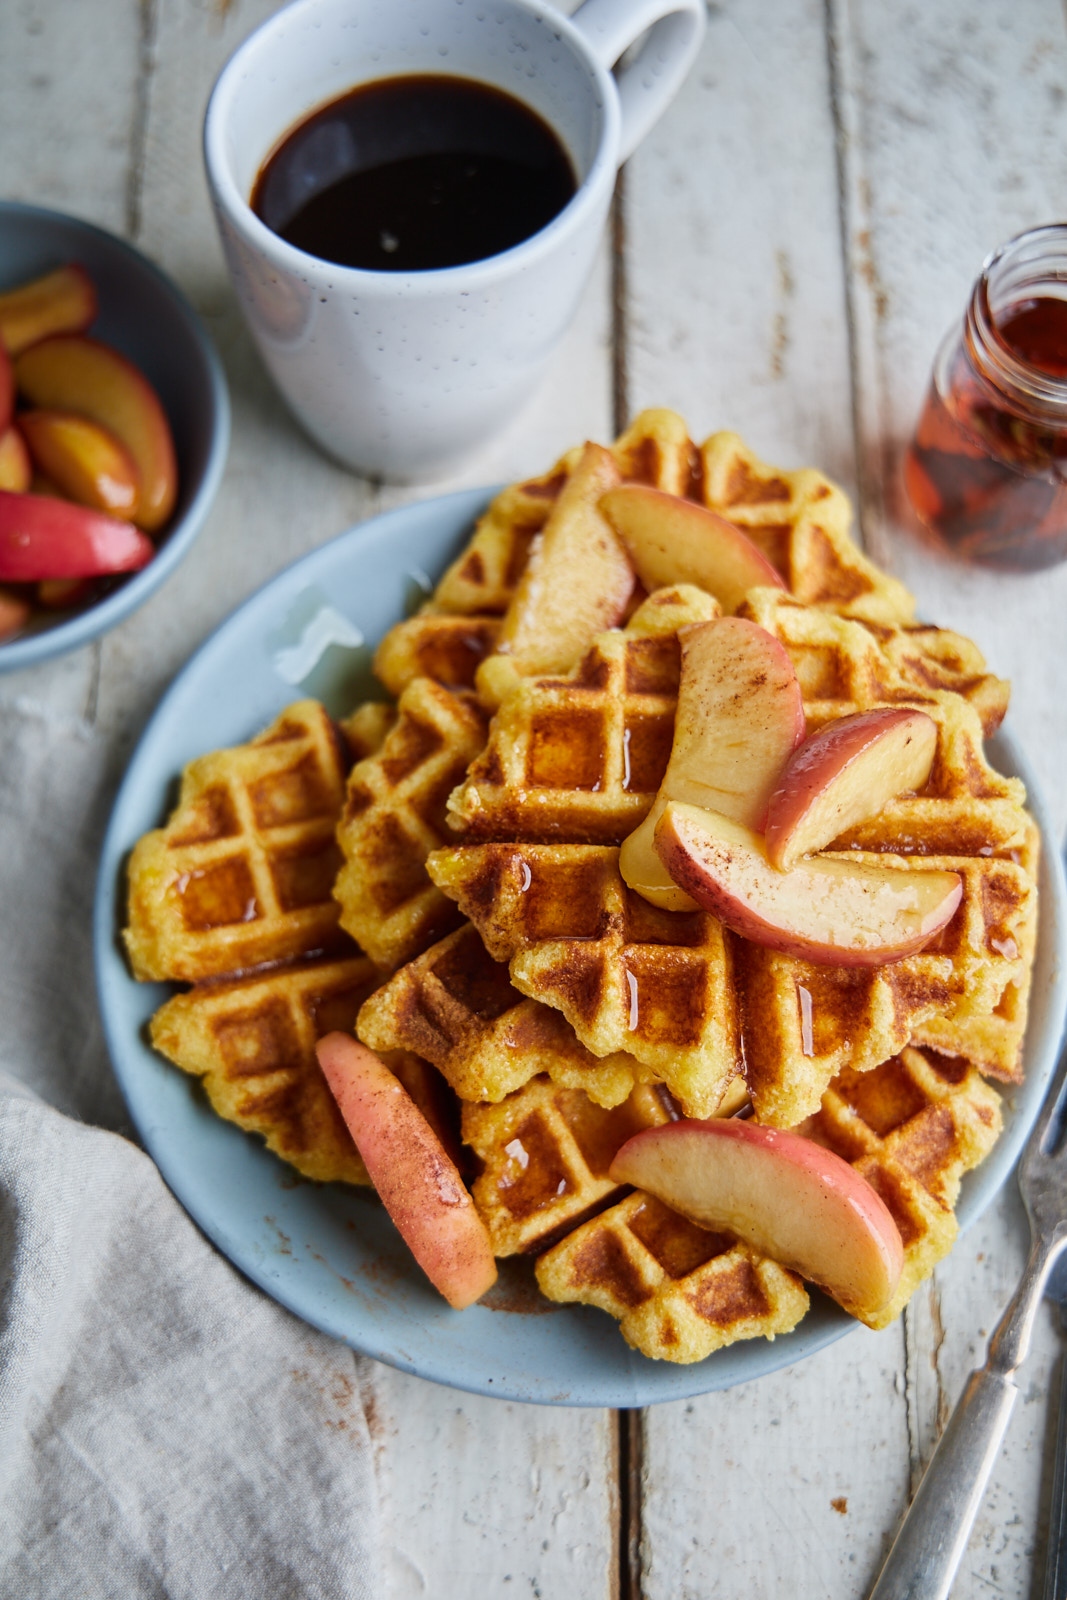 Corn Waffles With Caramelized Apples